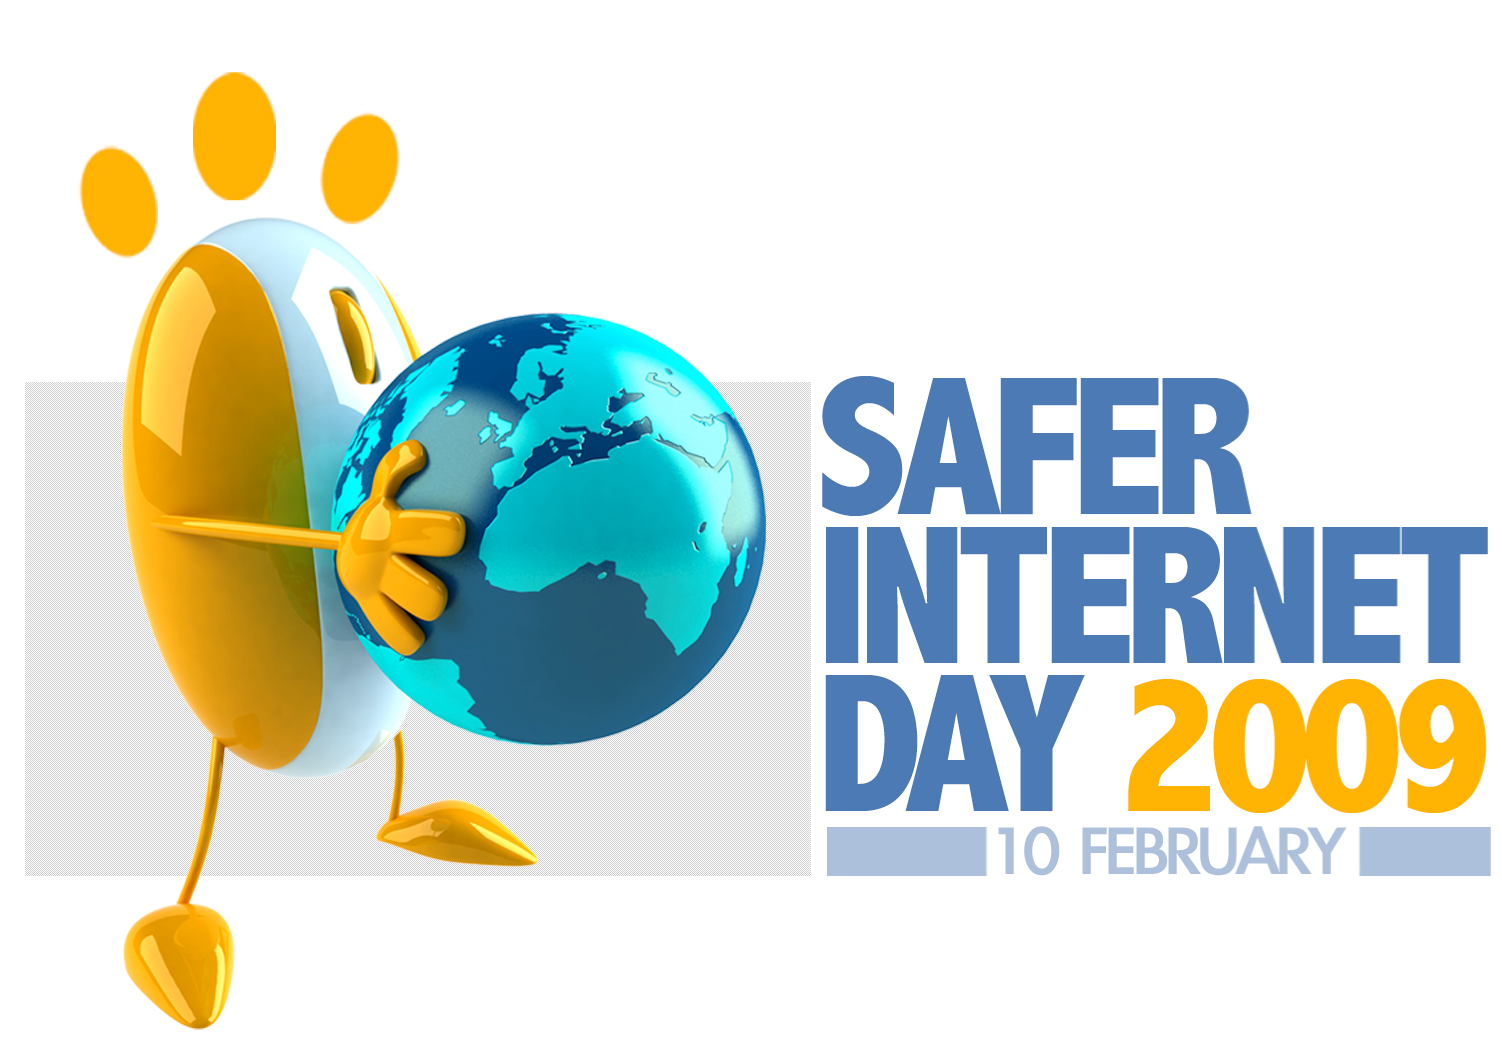 Safer Internet Day 2009